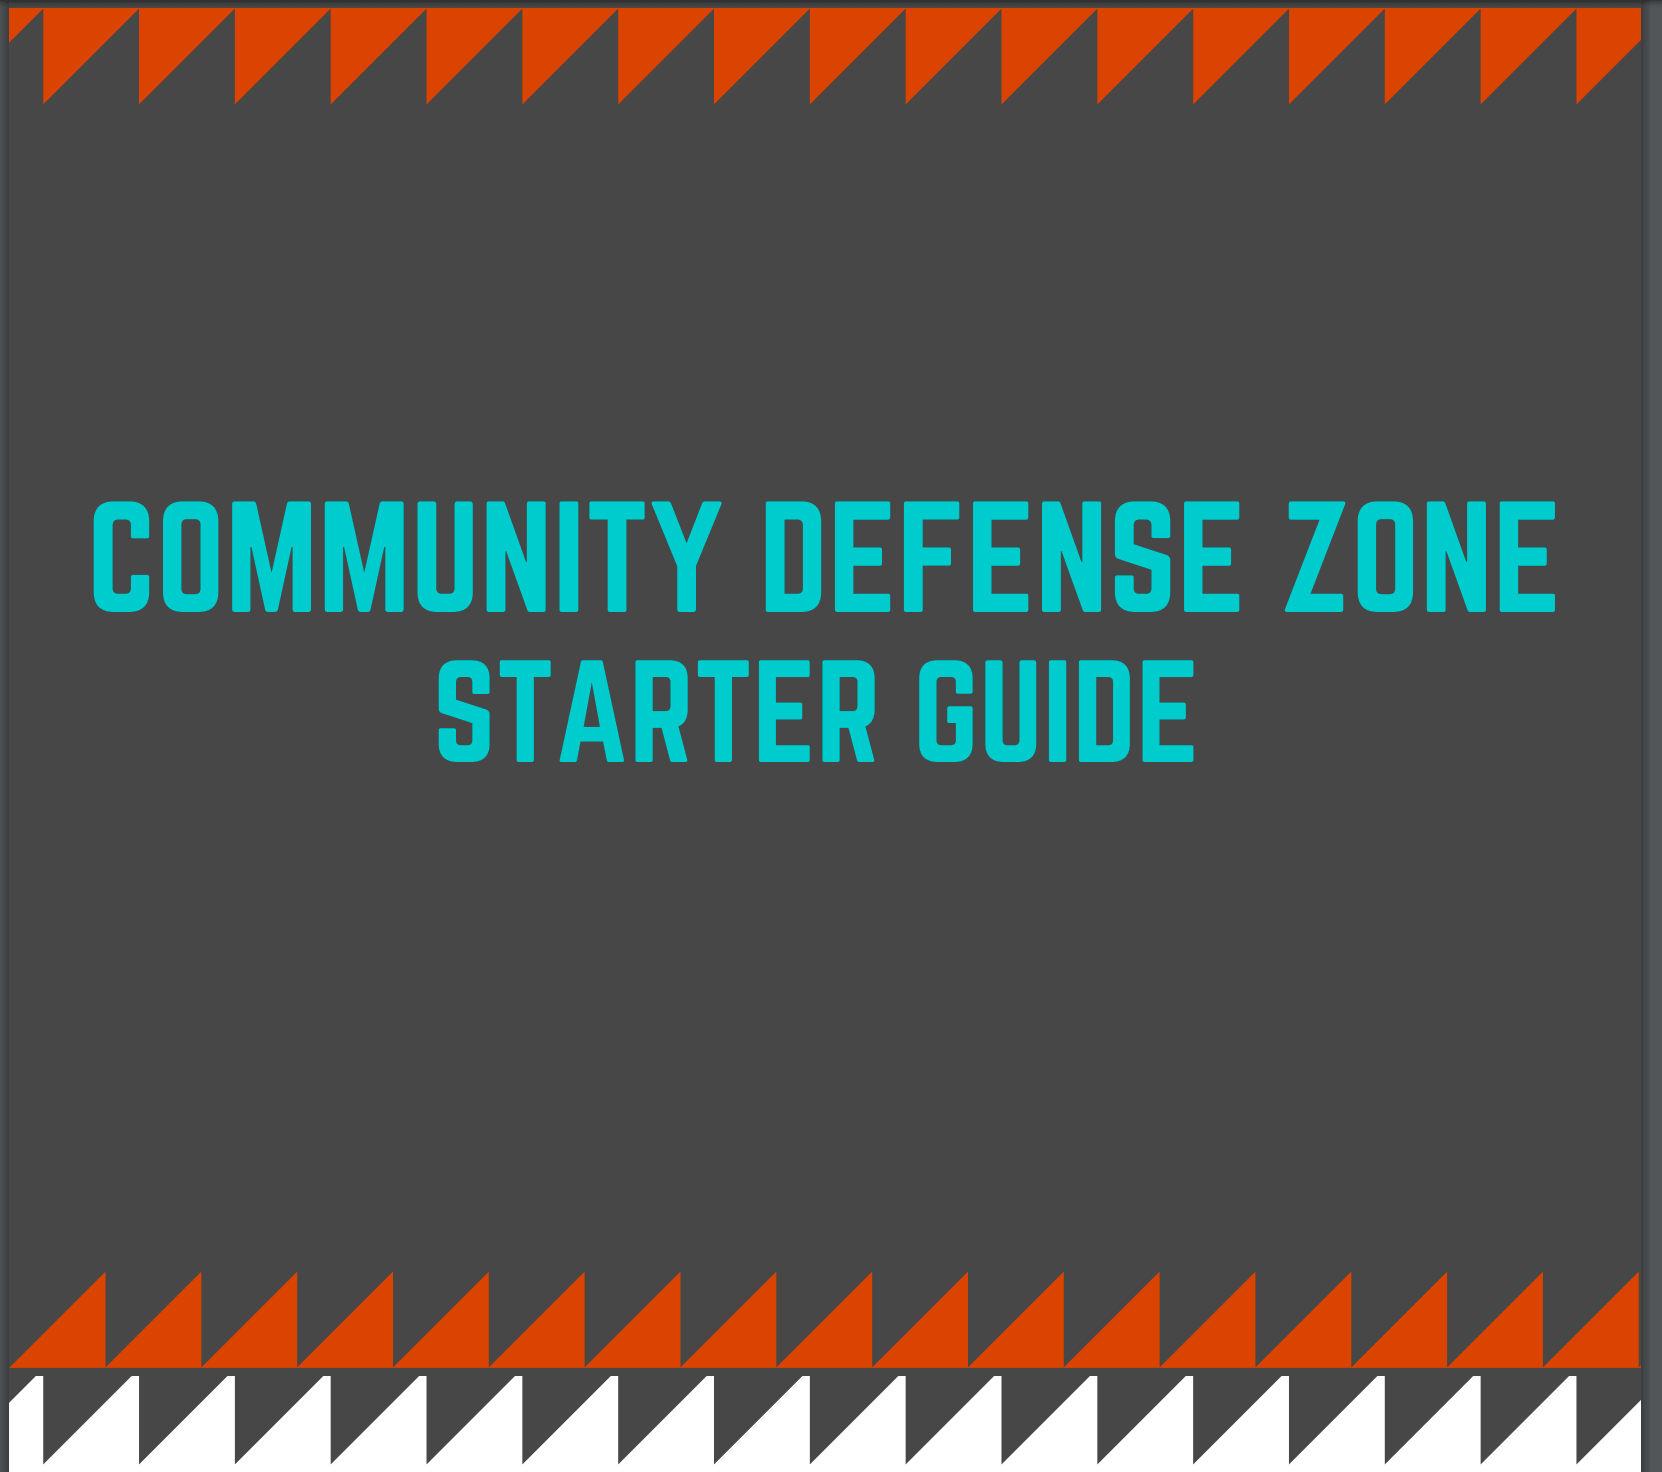 Community Defense Zone Guide